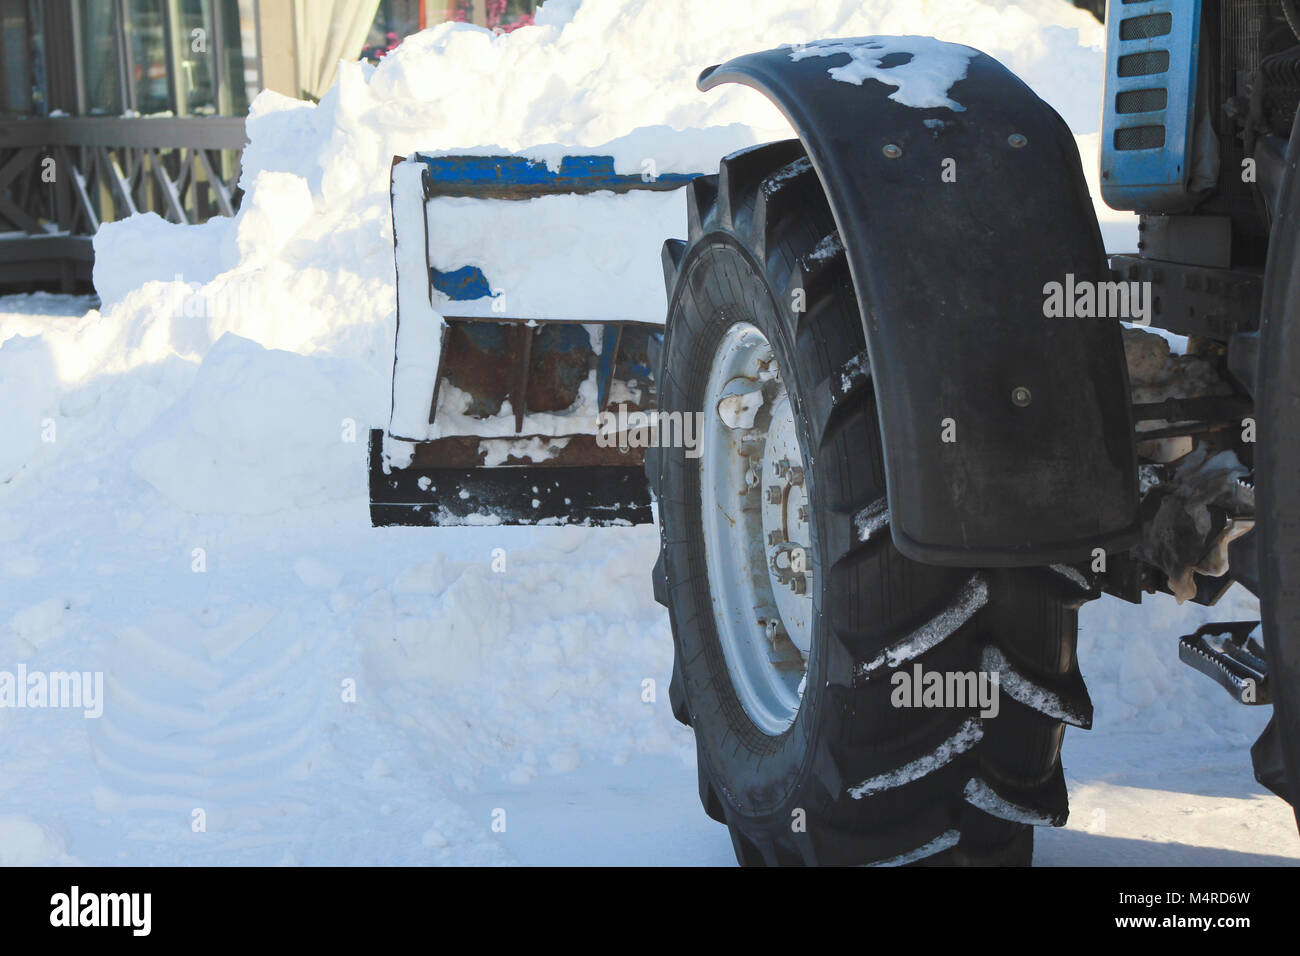 Clearing snow from the road with bulldozer in the city in winter, focus on blade and wheel - Stock Image